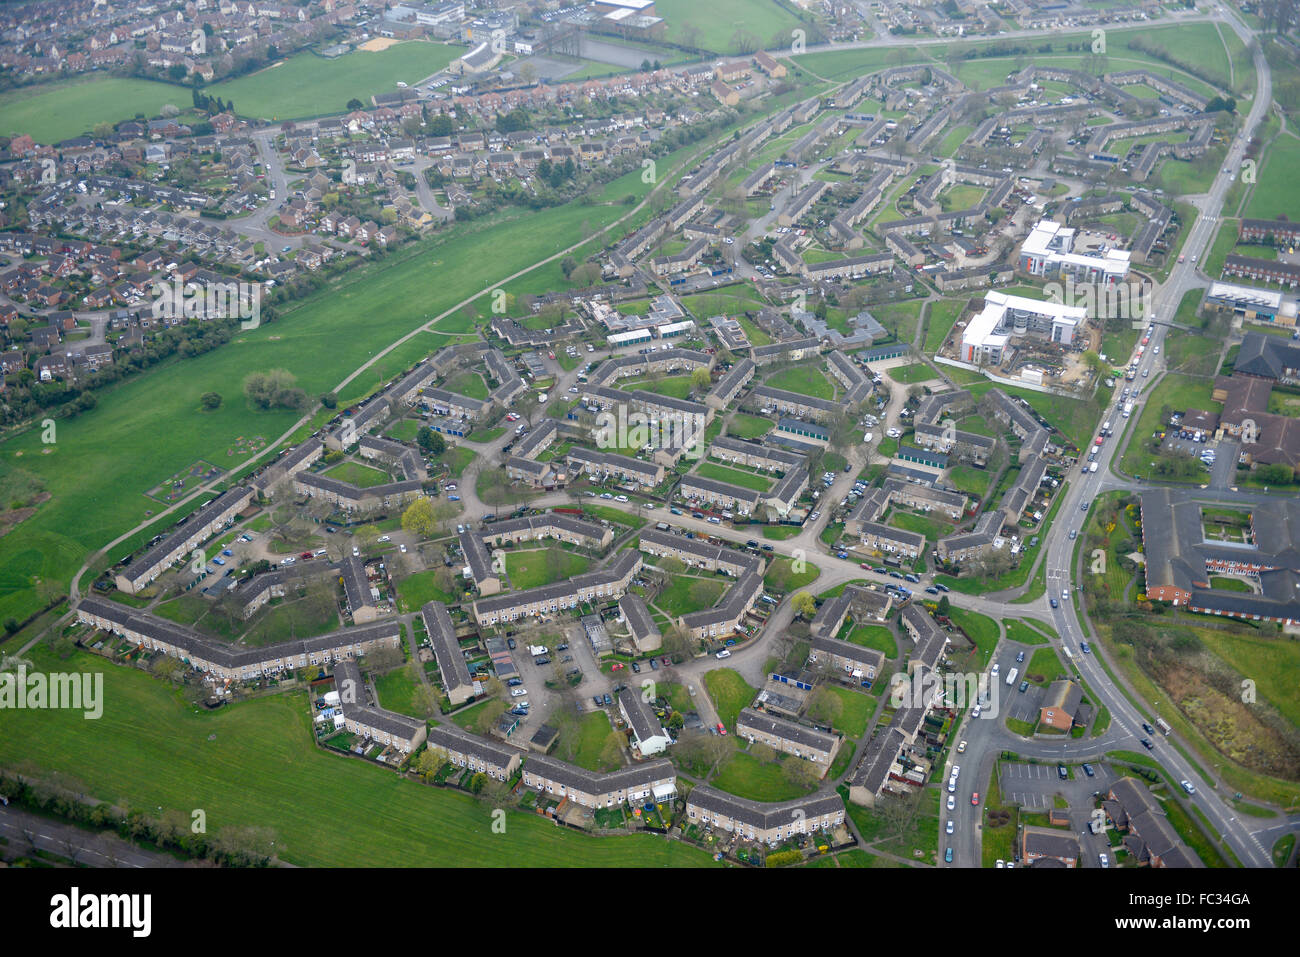 Views of the area around Kiln Way and Minerva Way in Kettering, Northamptonshire - Stock Image